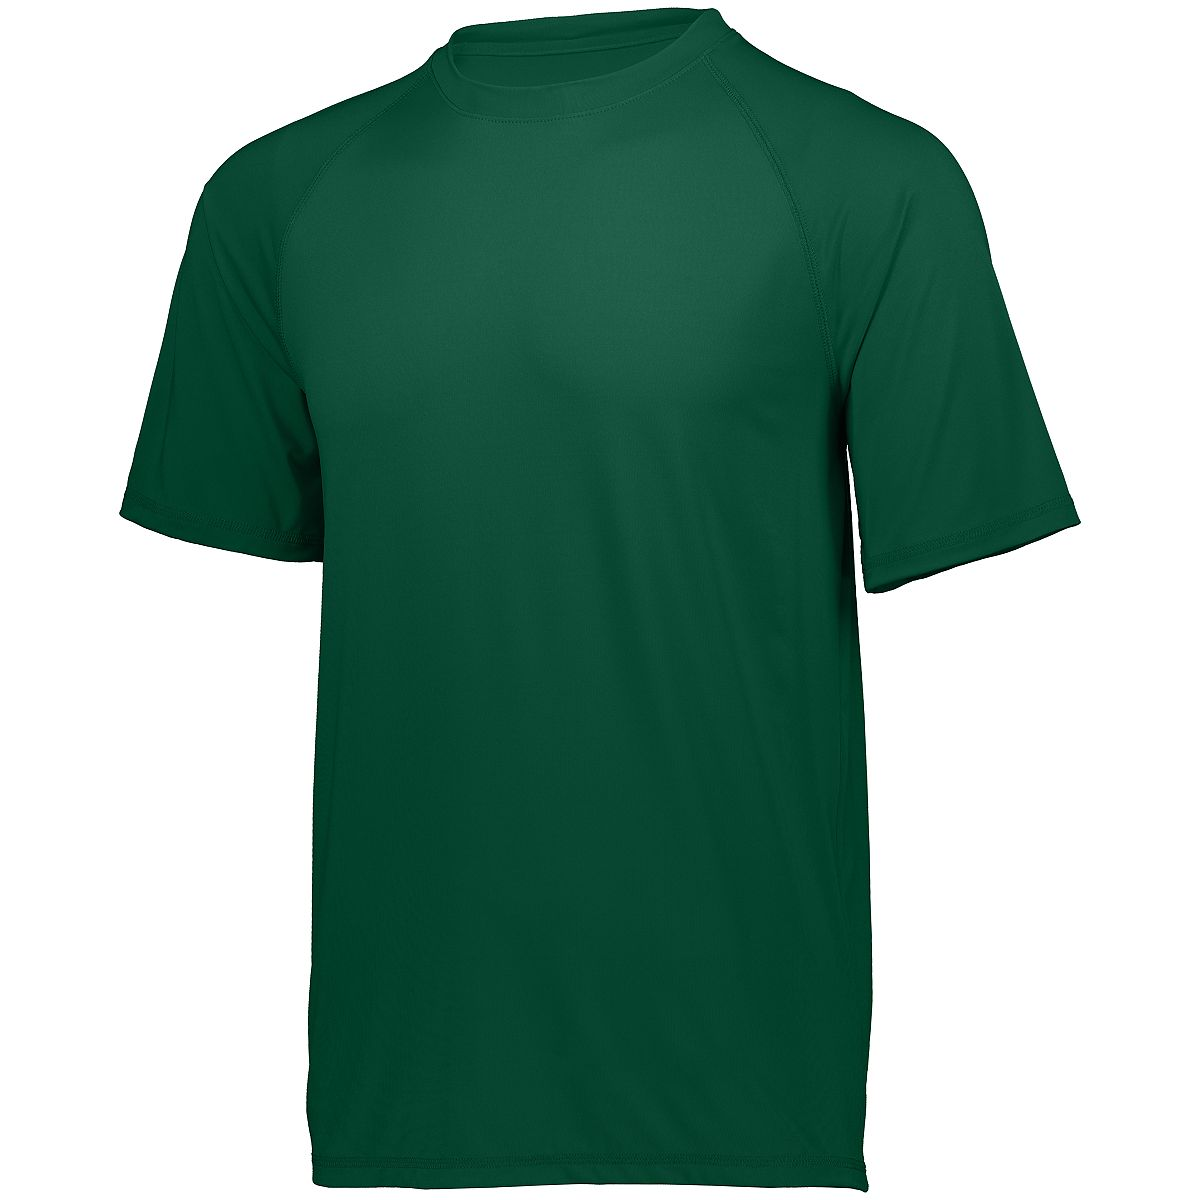 Holloway Swift Wicking Shirt Forest Xl - image 1 of 1